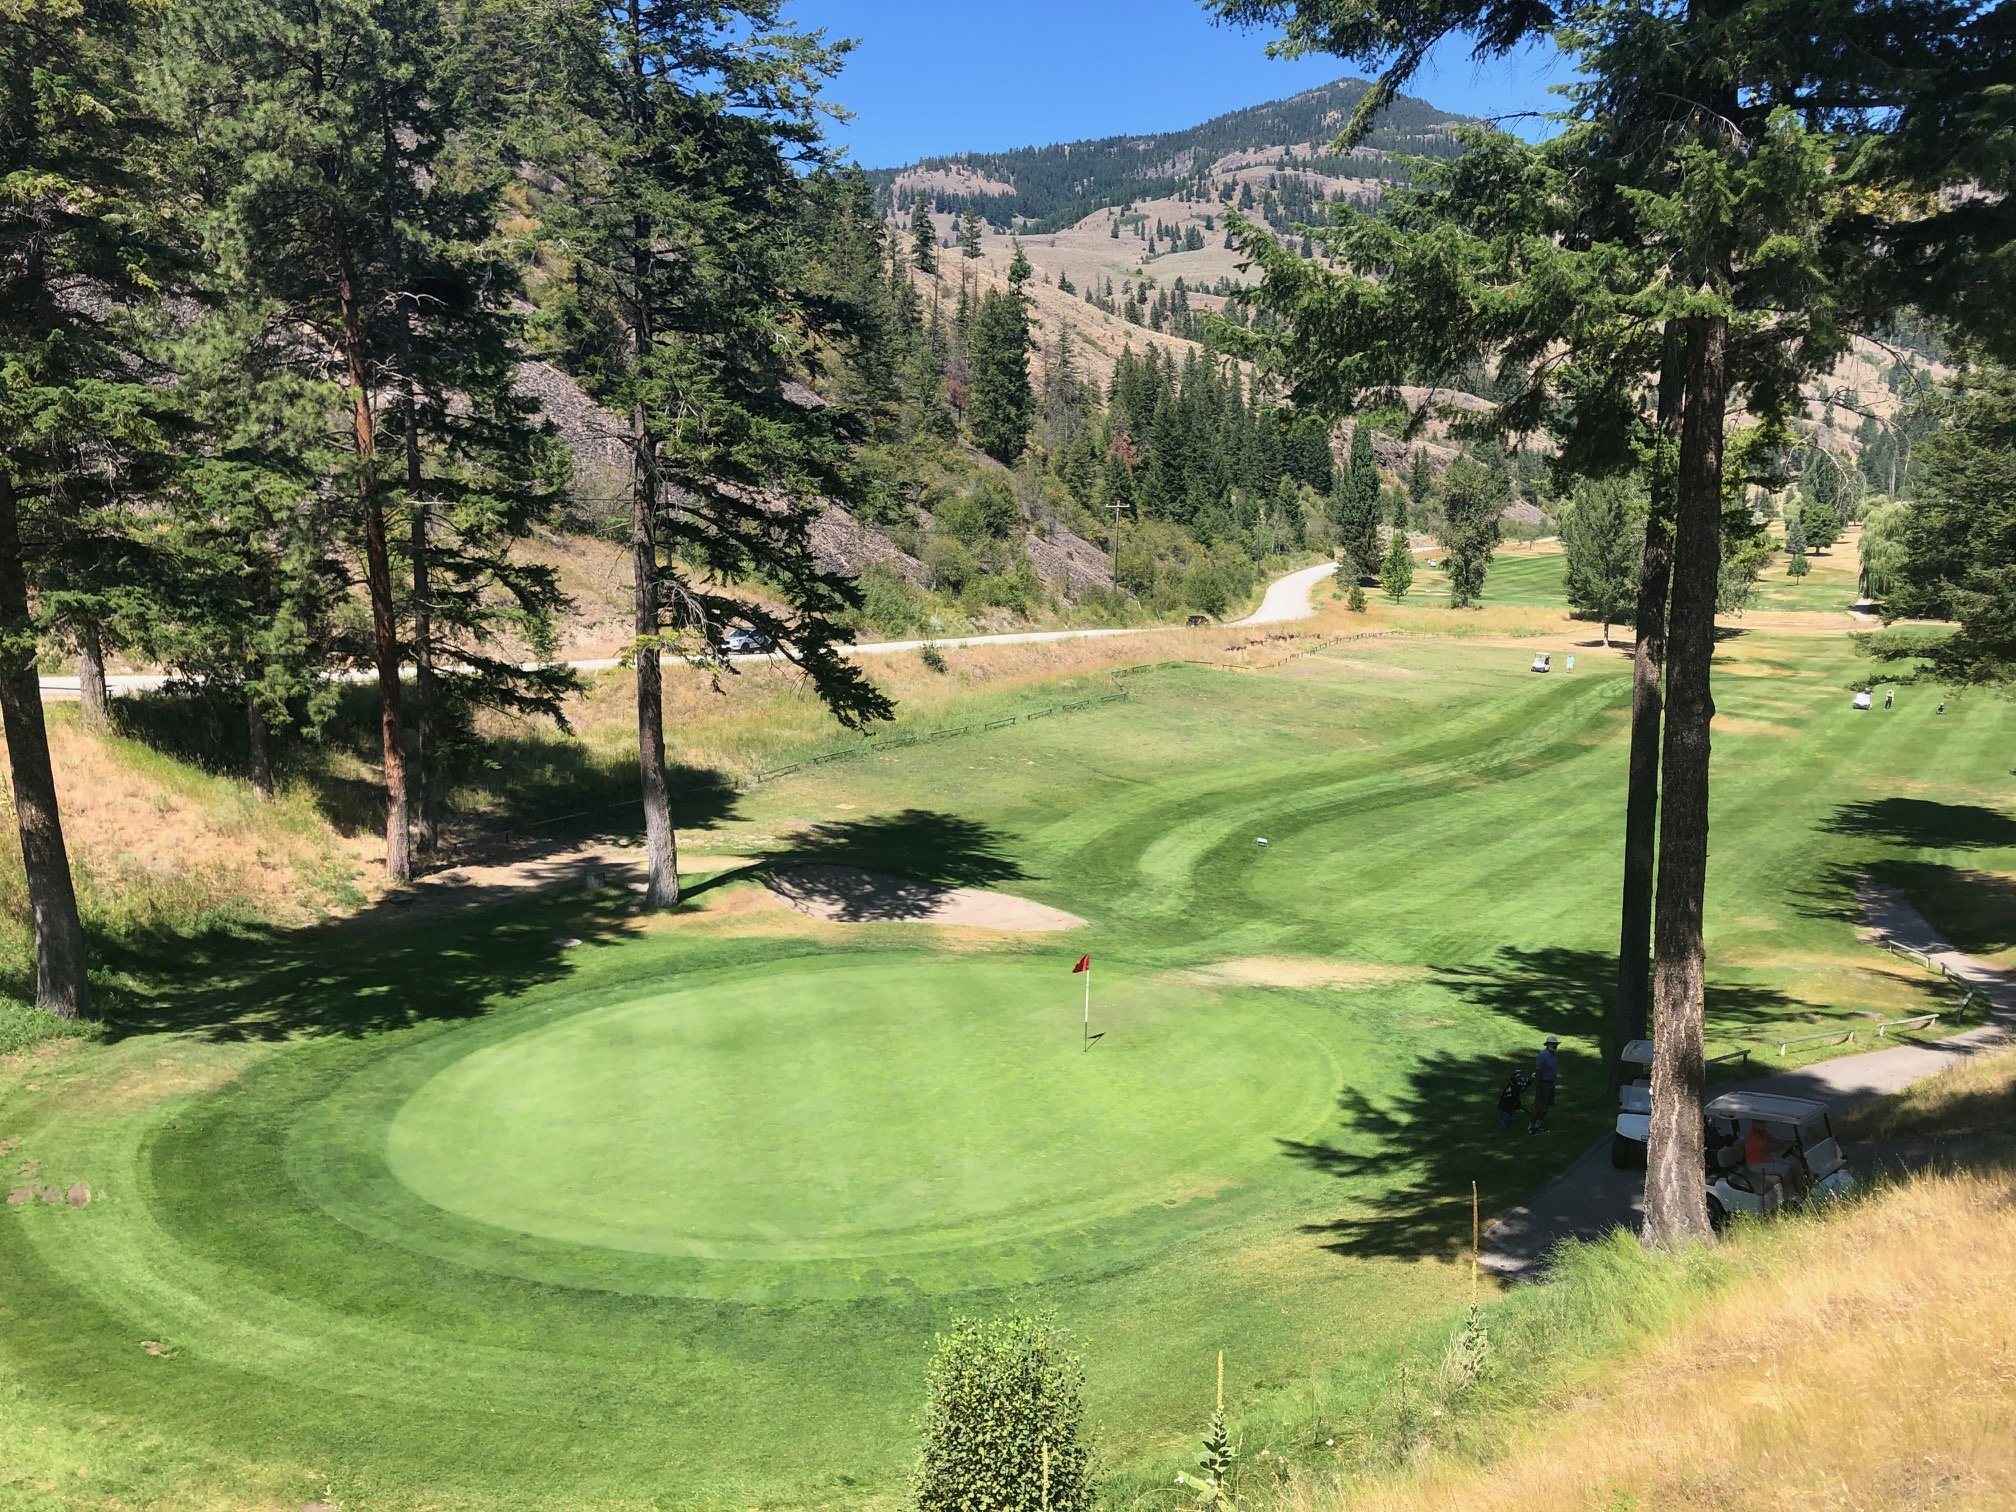 79 Twin Lakes Road, Kaleden, BC - Joint Venture Opportunity: Twin Lakes Golf & RV Resort